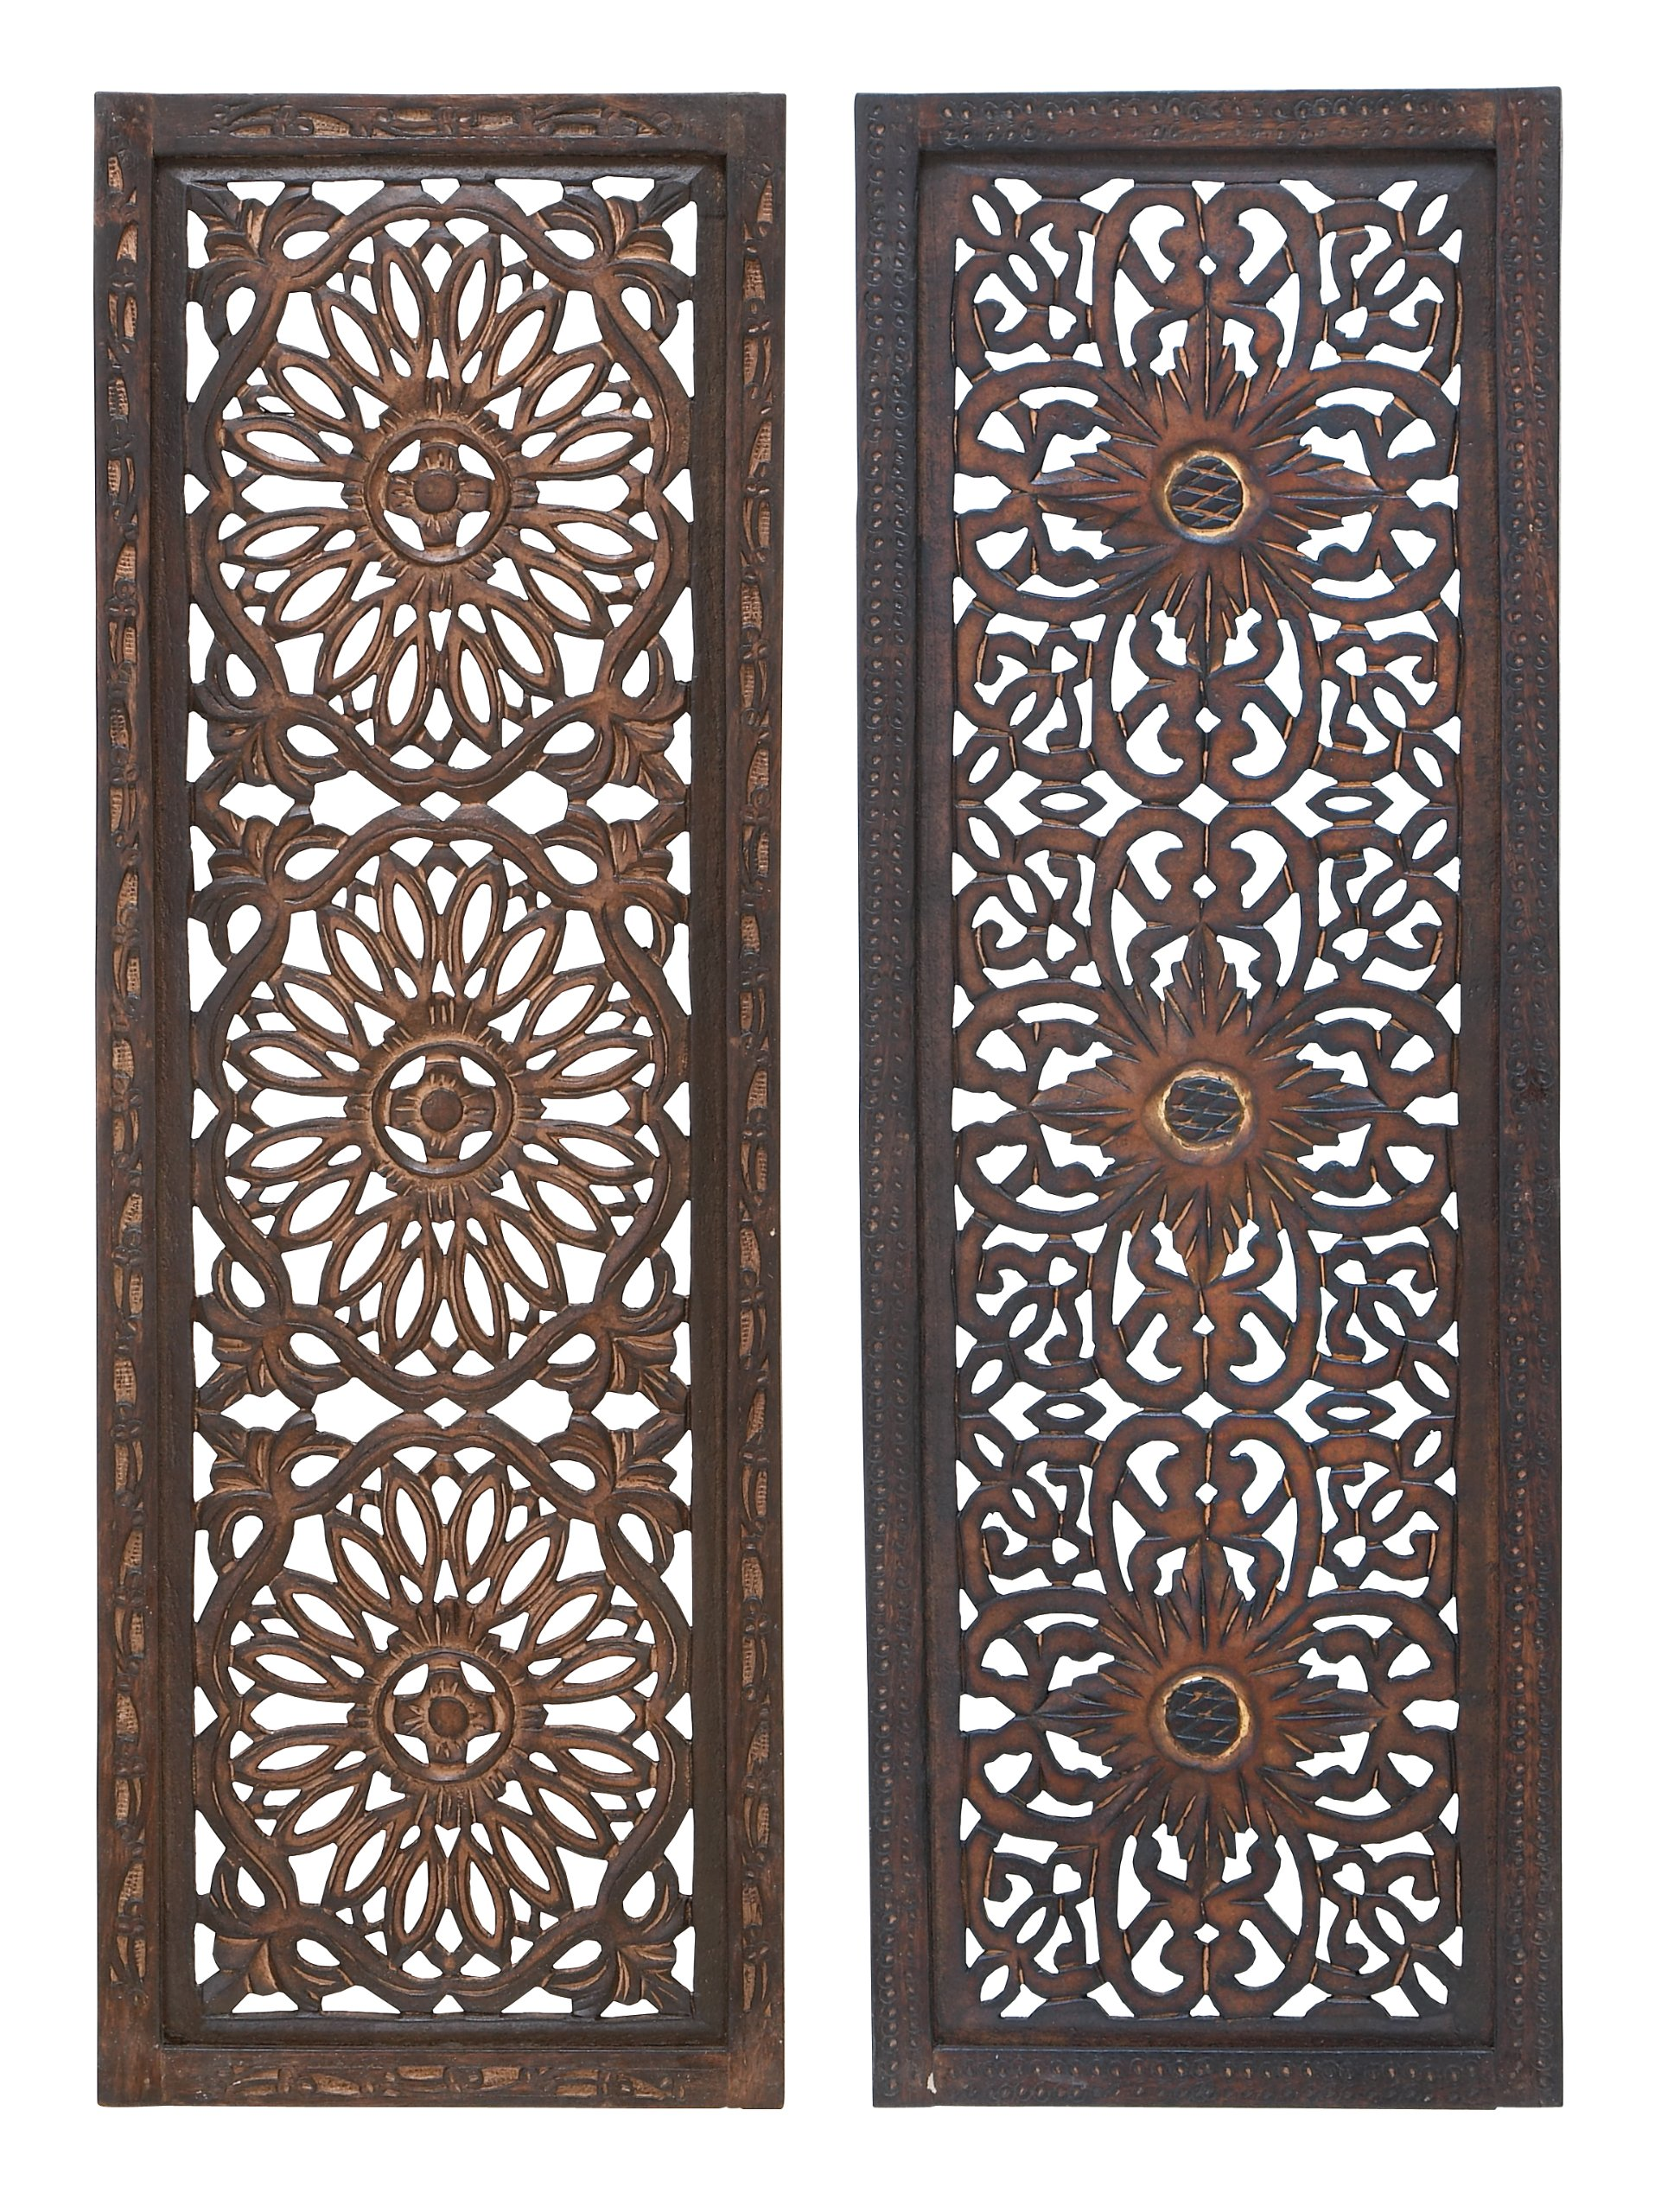 Deco 79 34087 Elegant Wall Sculpture Wood Wall Panel Assorted, 36/12-Inch, Set of 2